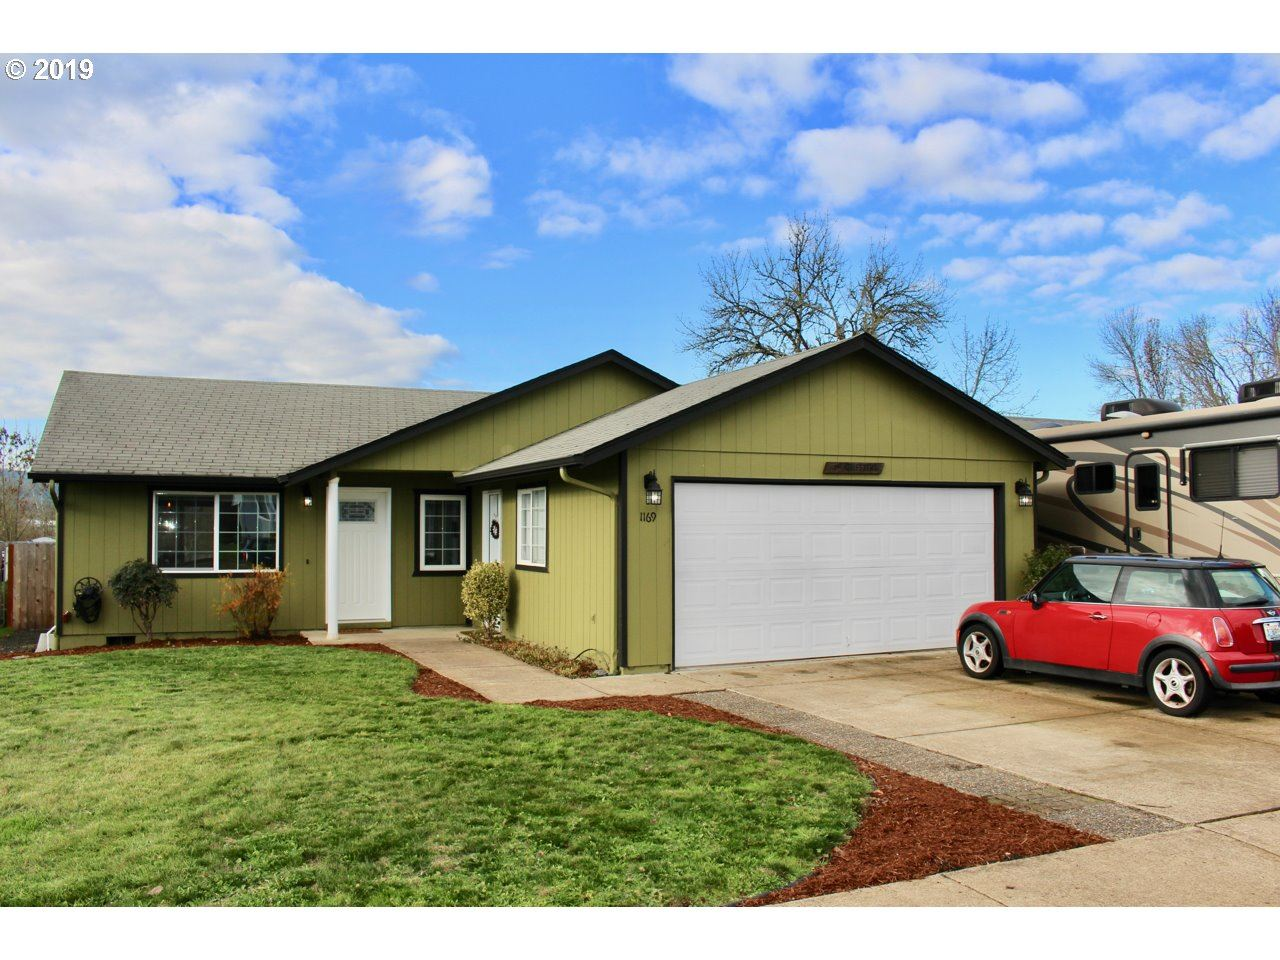 Photo for 1169 ASH GROVE LOOP, Creswell, OR 97426 (MLS # 19691058)